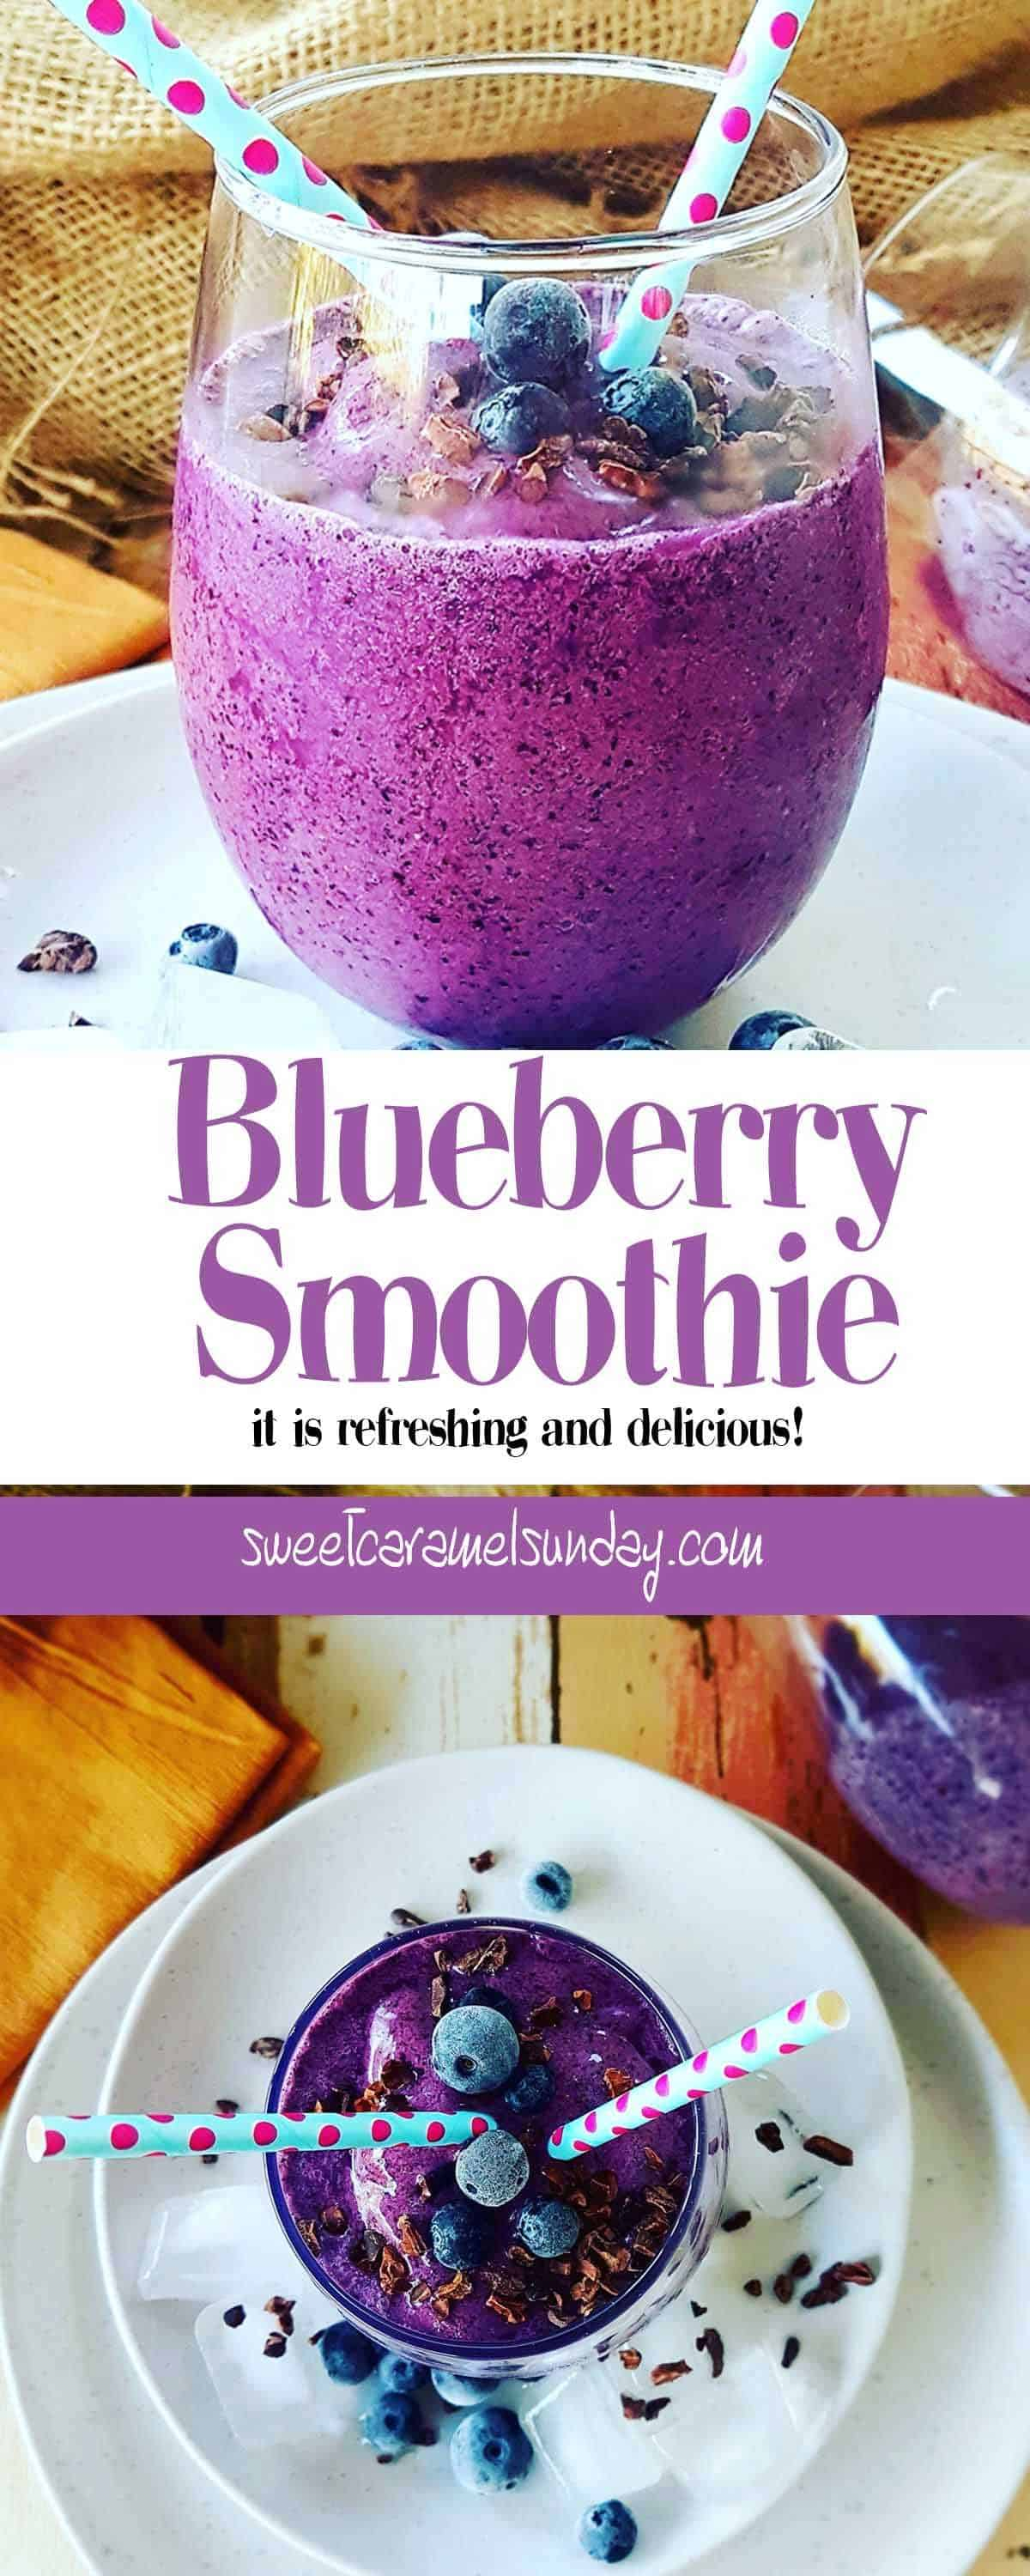 Blueberry Smoothie in a short glass with a blue straw and text overlay